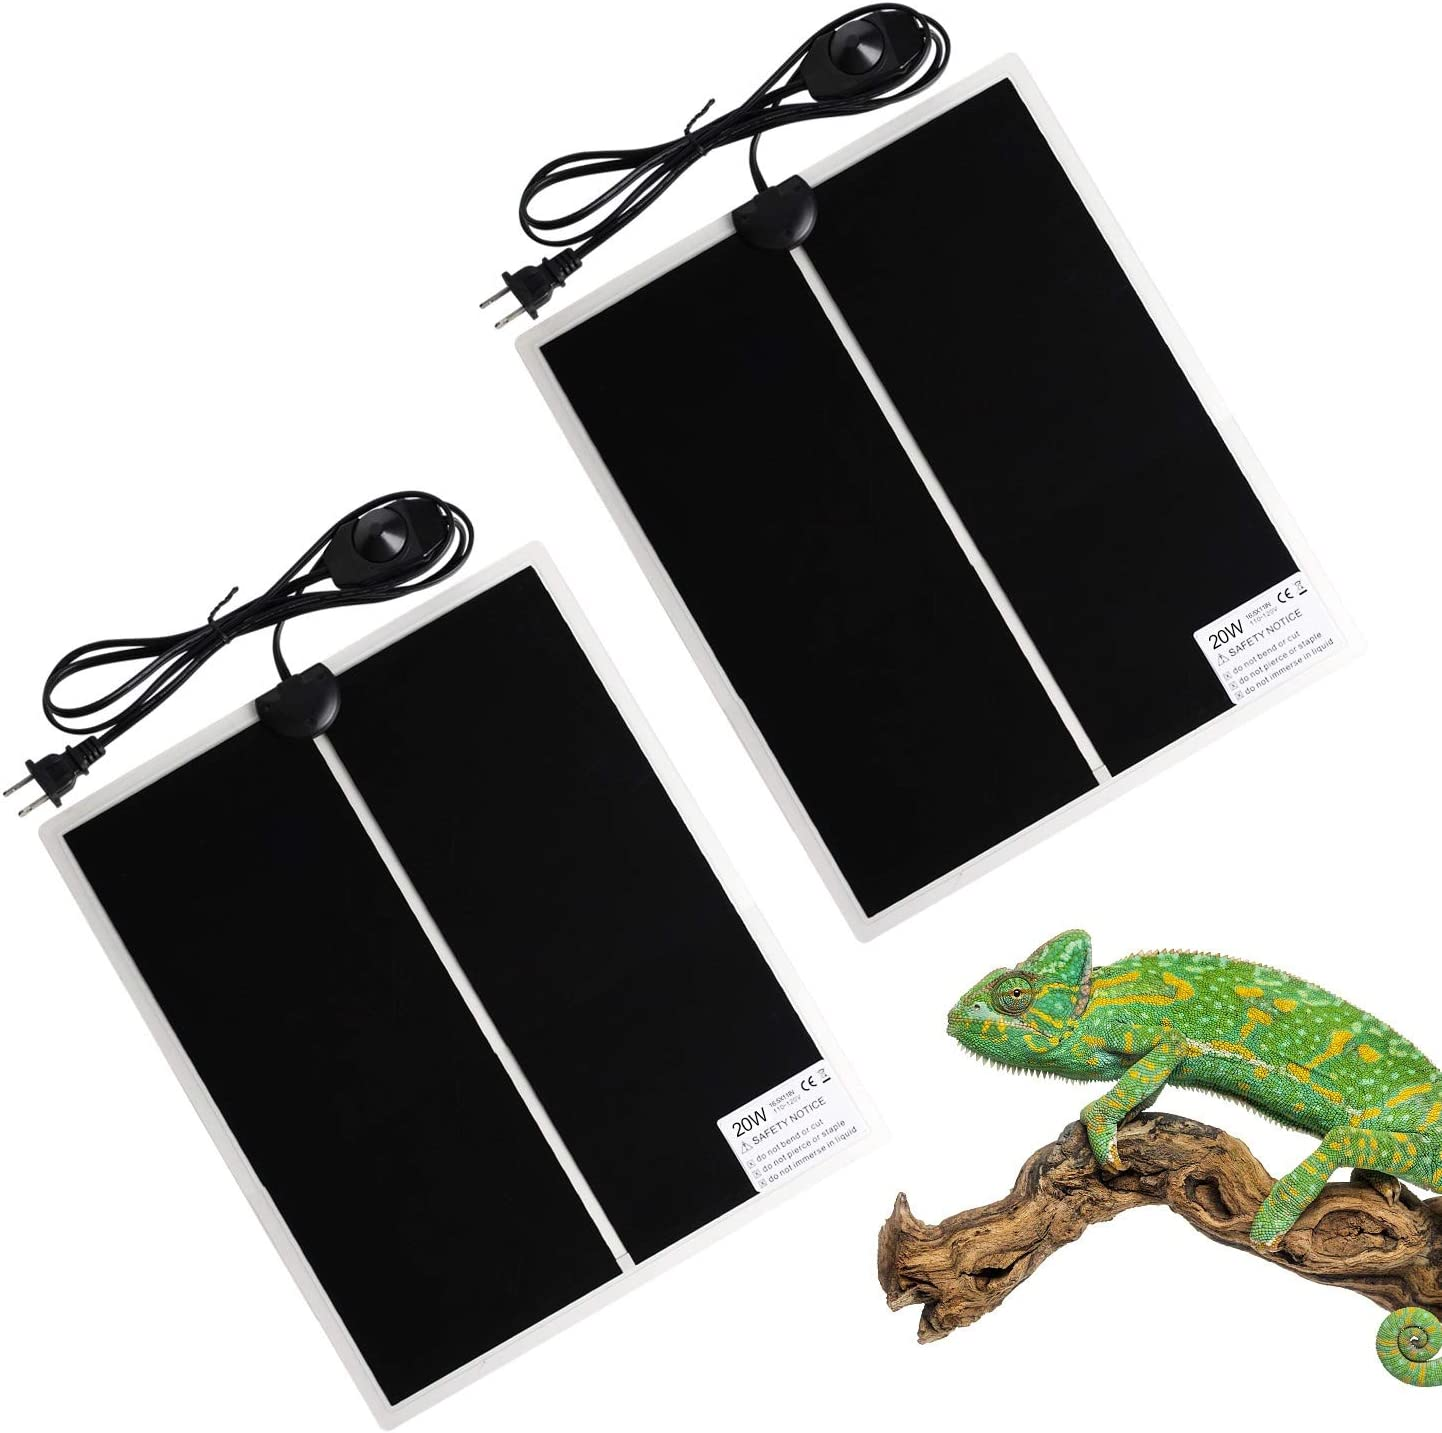 FIVEAGE 20W 16.5 Inch OFFicial shop x 11 Heating with Reptile New arrival Warmer Pad